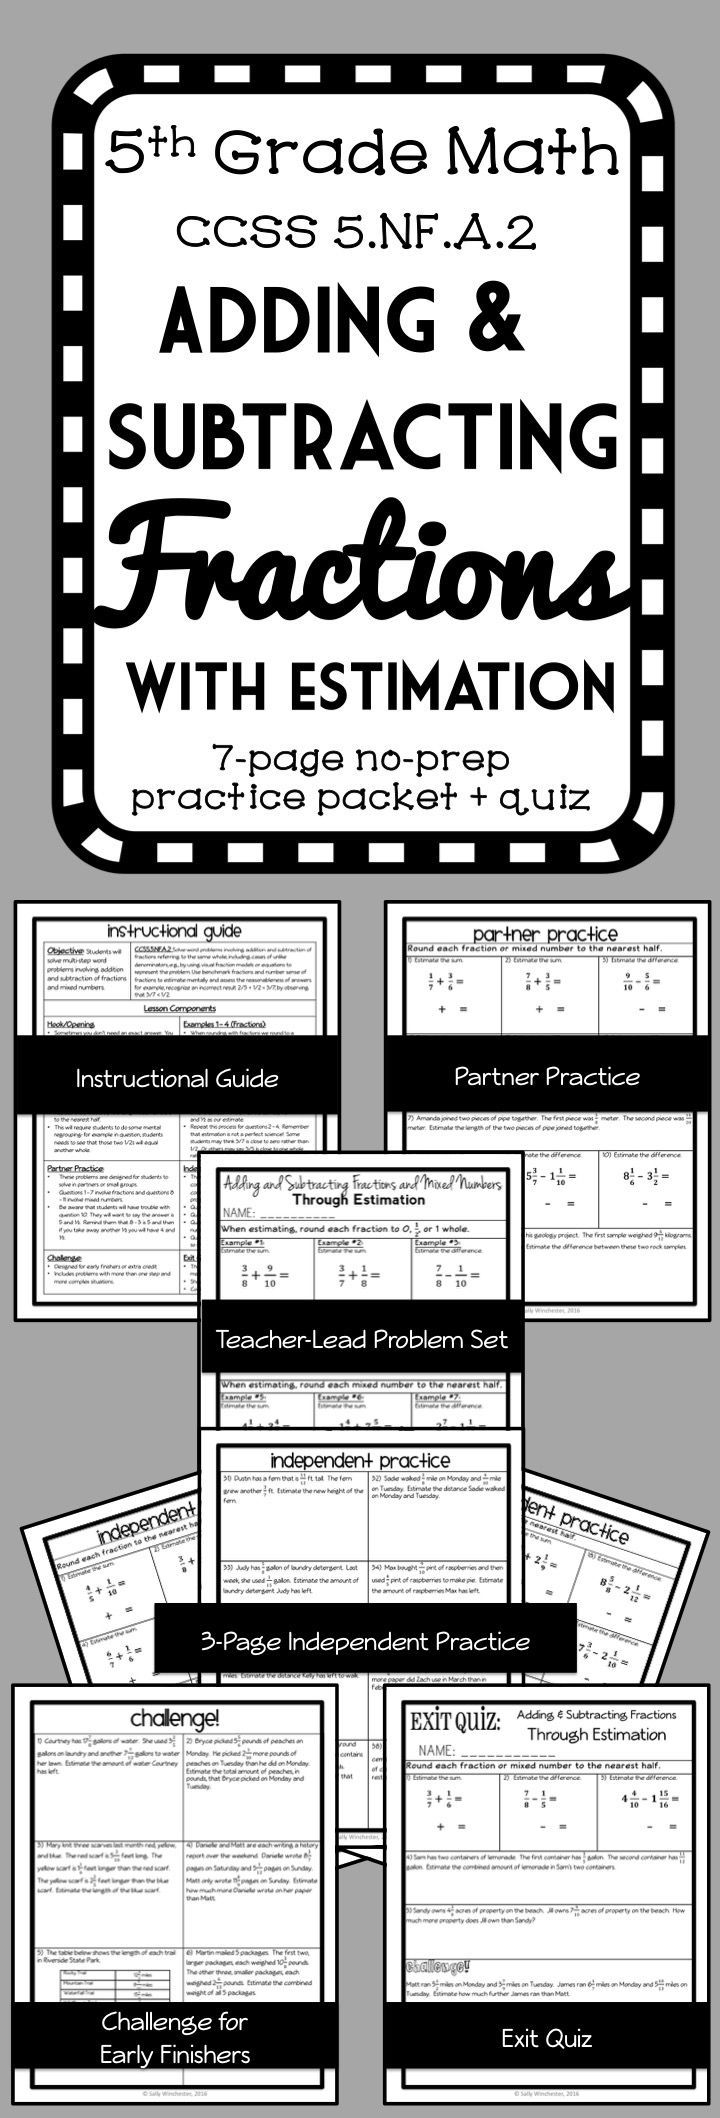 Estimating Fraction Sums and Differences, 8 page lesson packet, Using Benchmarks to Estimation Fraction Addition and Subtraction Problems.  Includes both fractions and mixed numbers in computation and word problems. Guided notes and exit quiz!